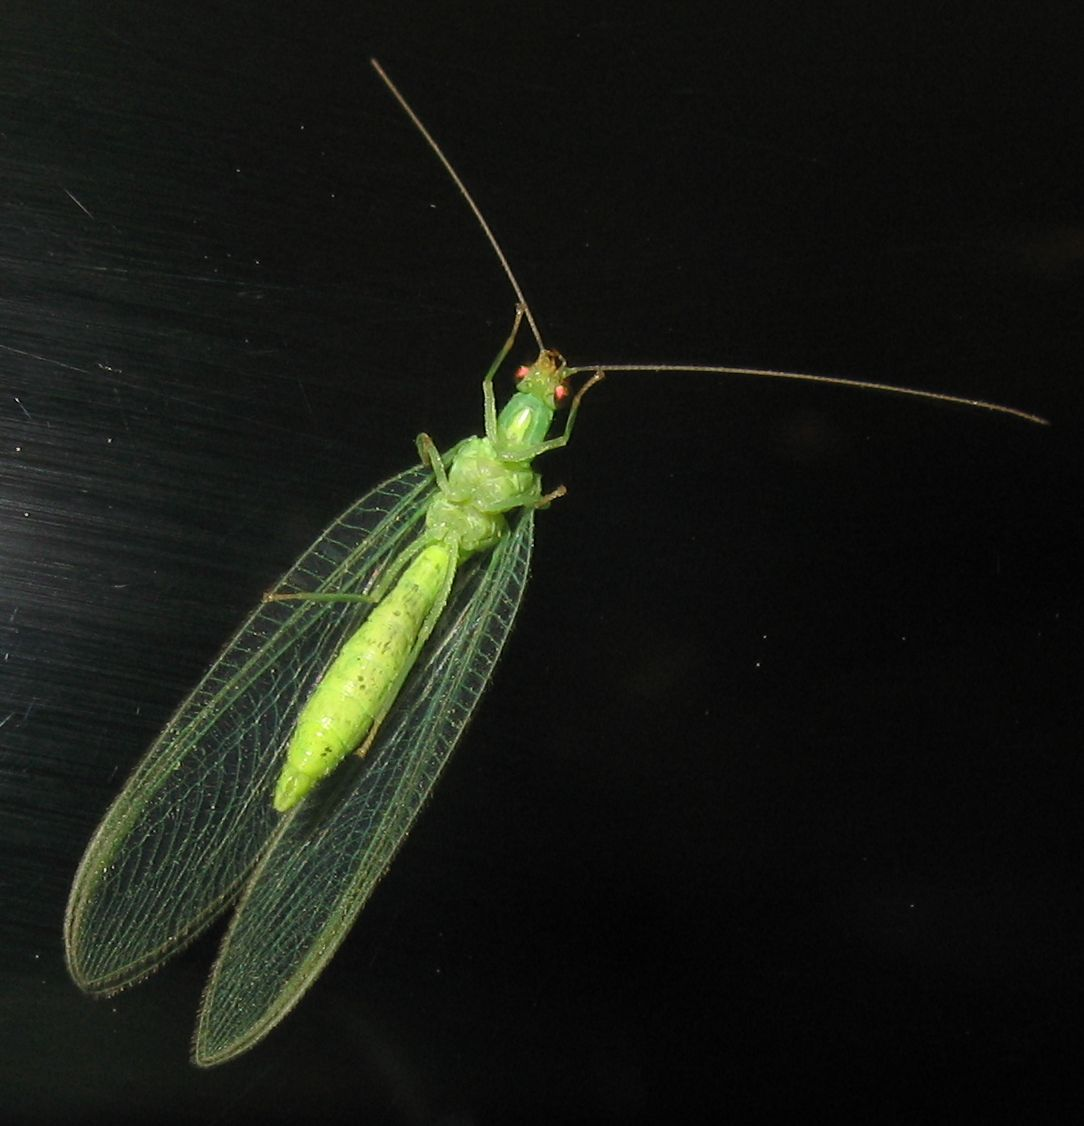 Chrysoperla pallida